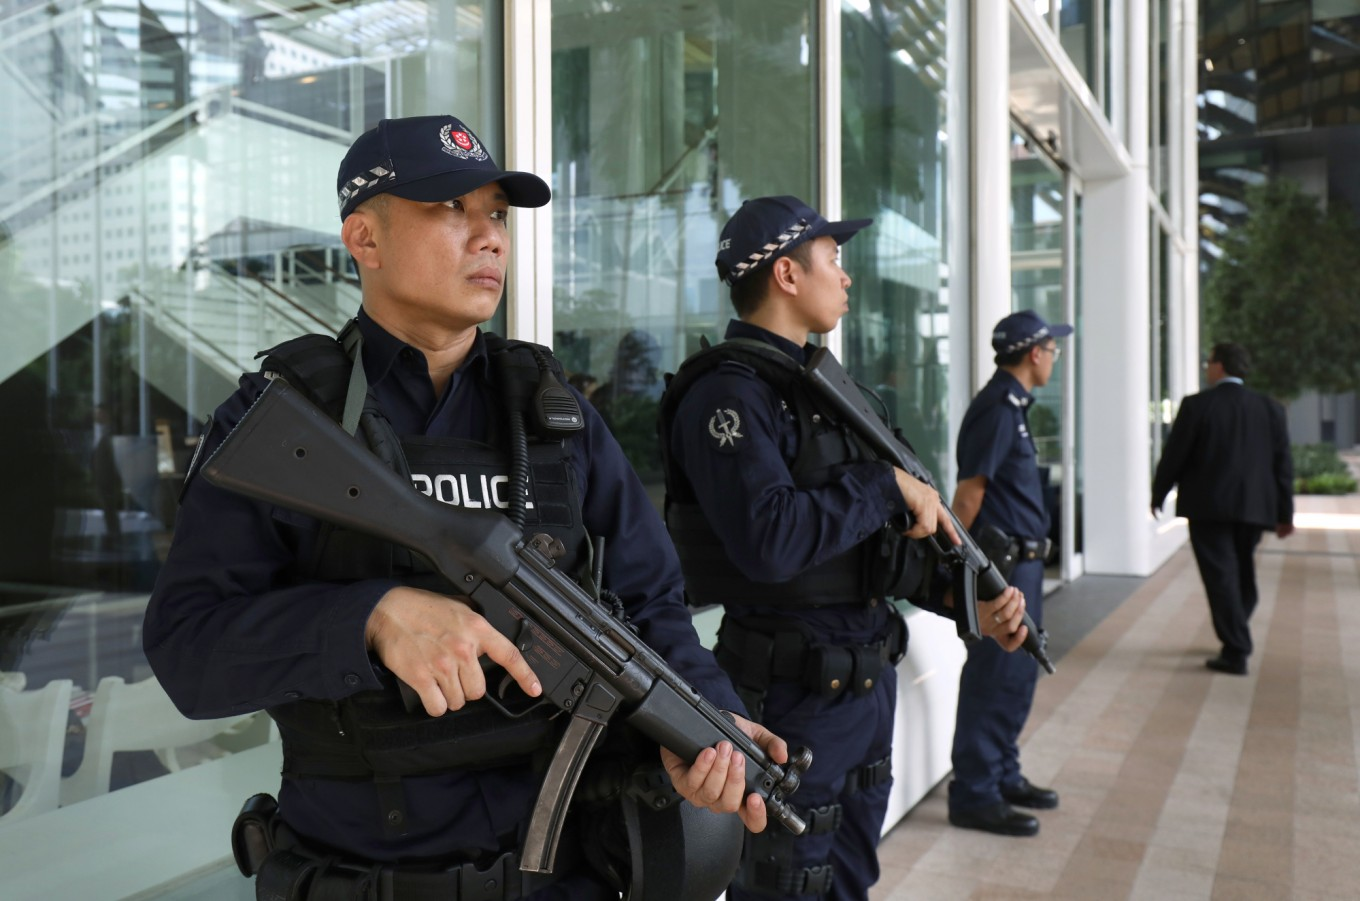 Singapore terrorism threat at highest since 9/11, minister says